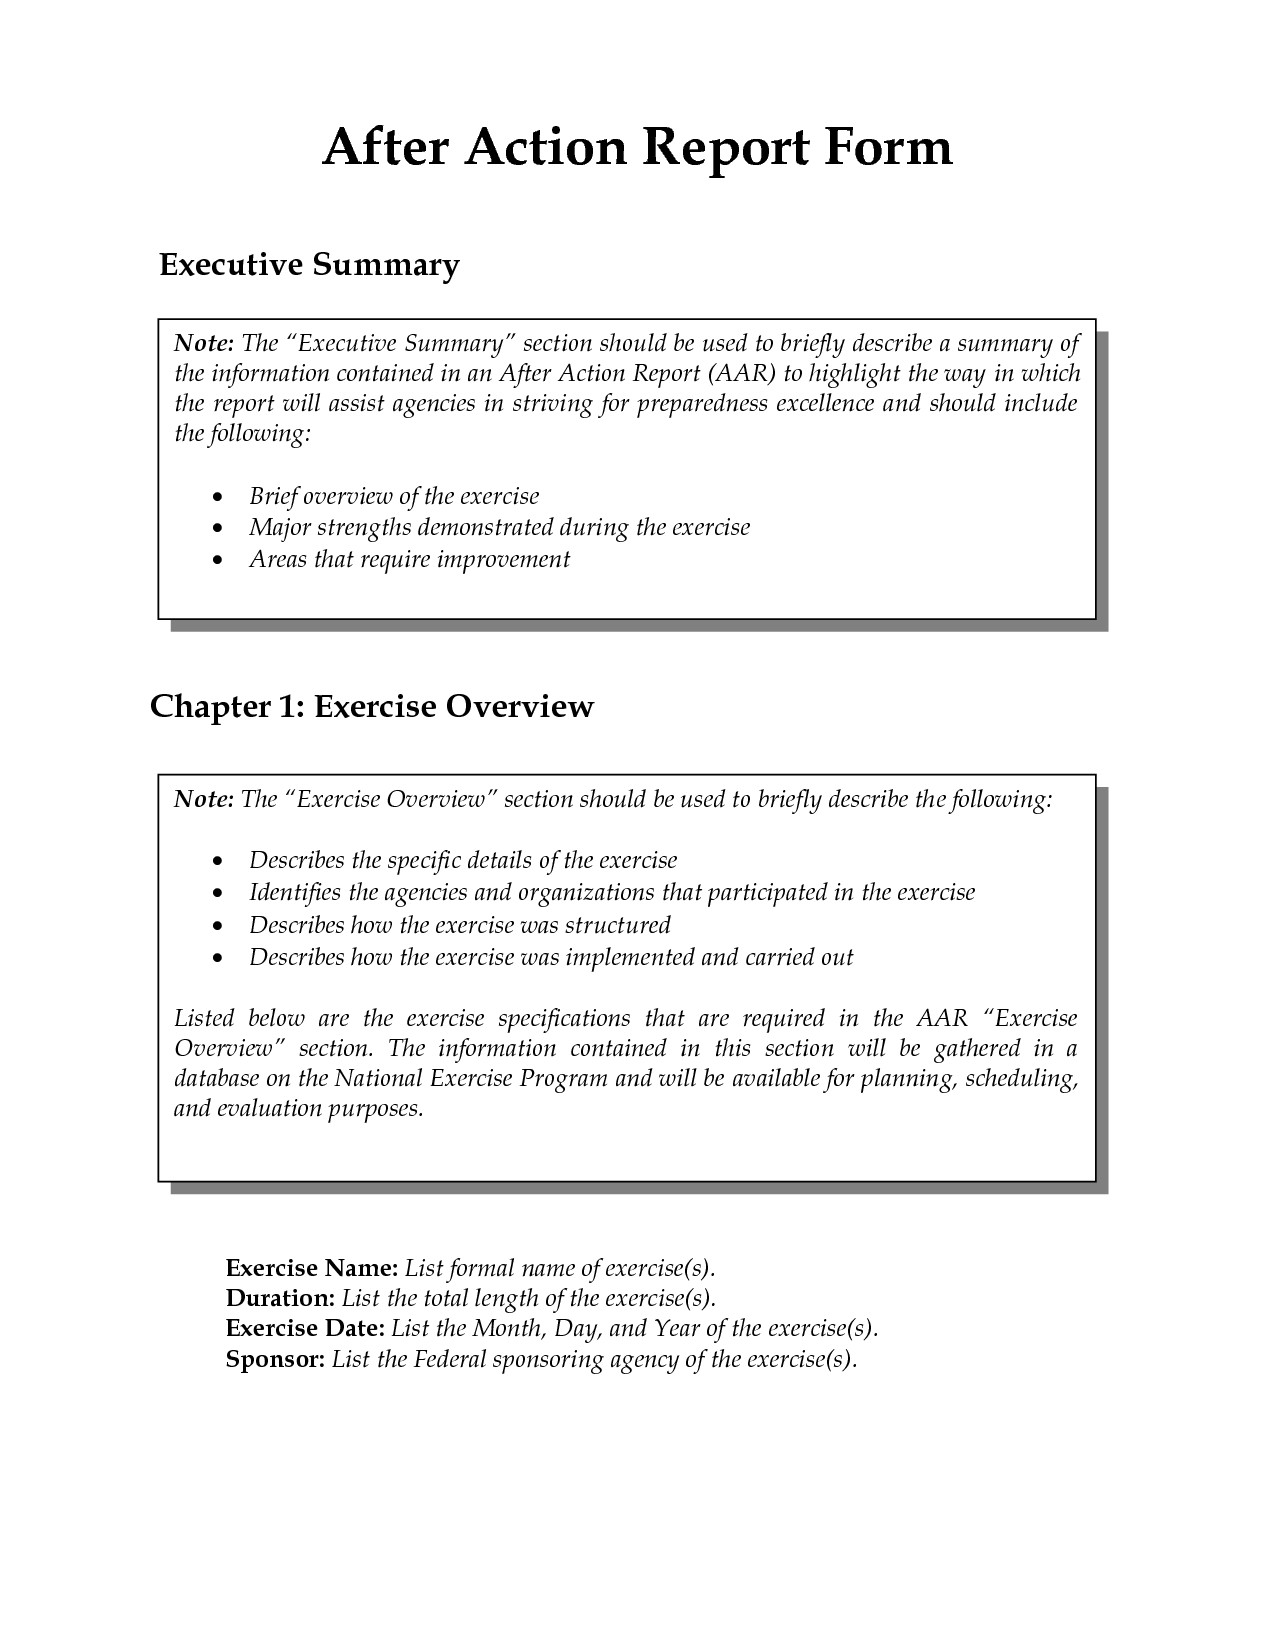 After Action Report Template after Action Report Template